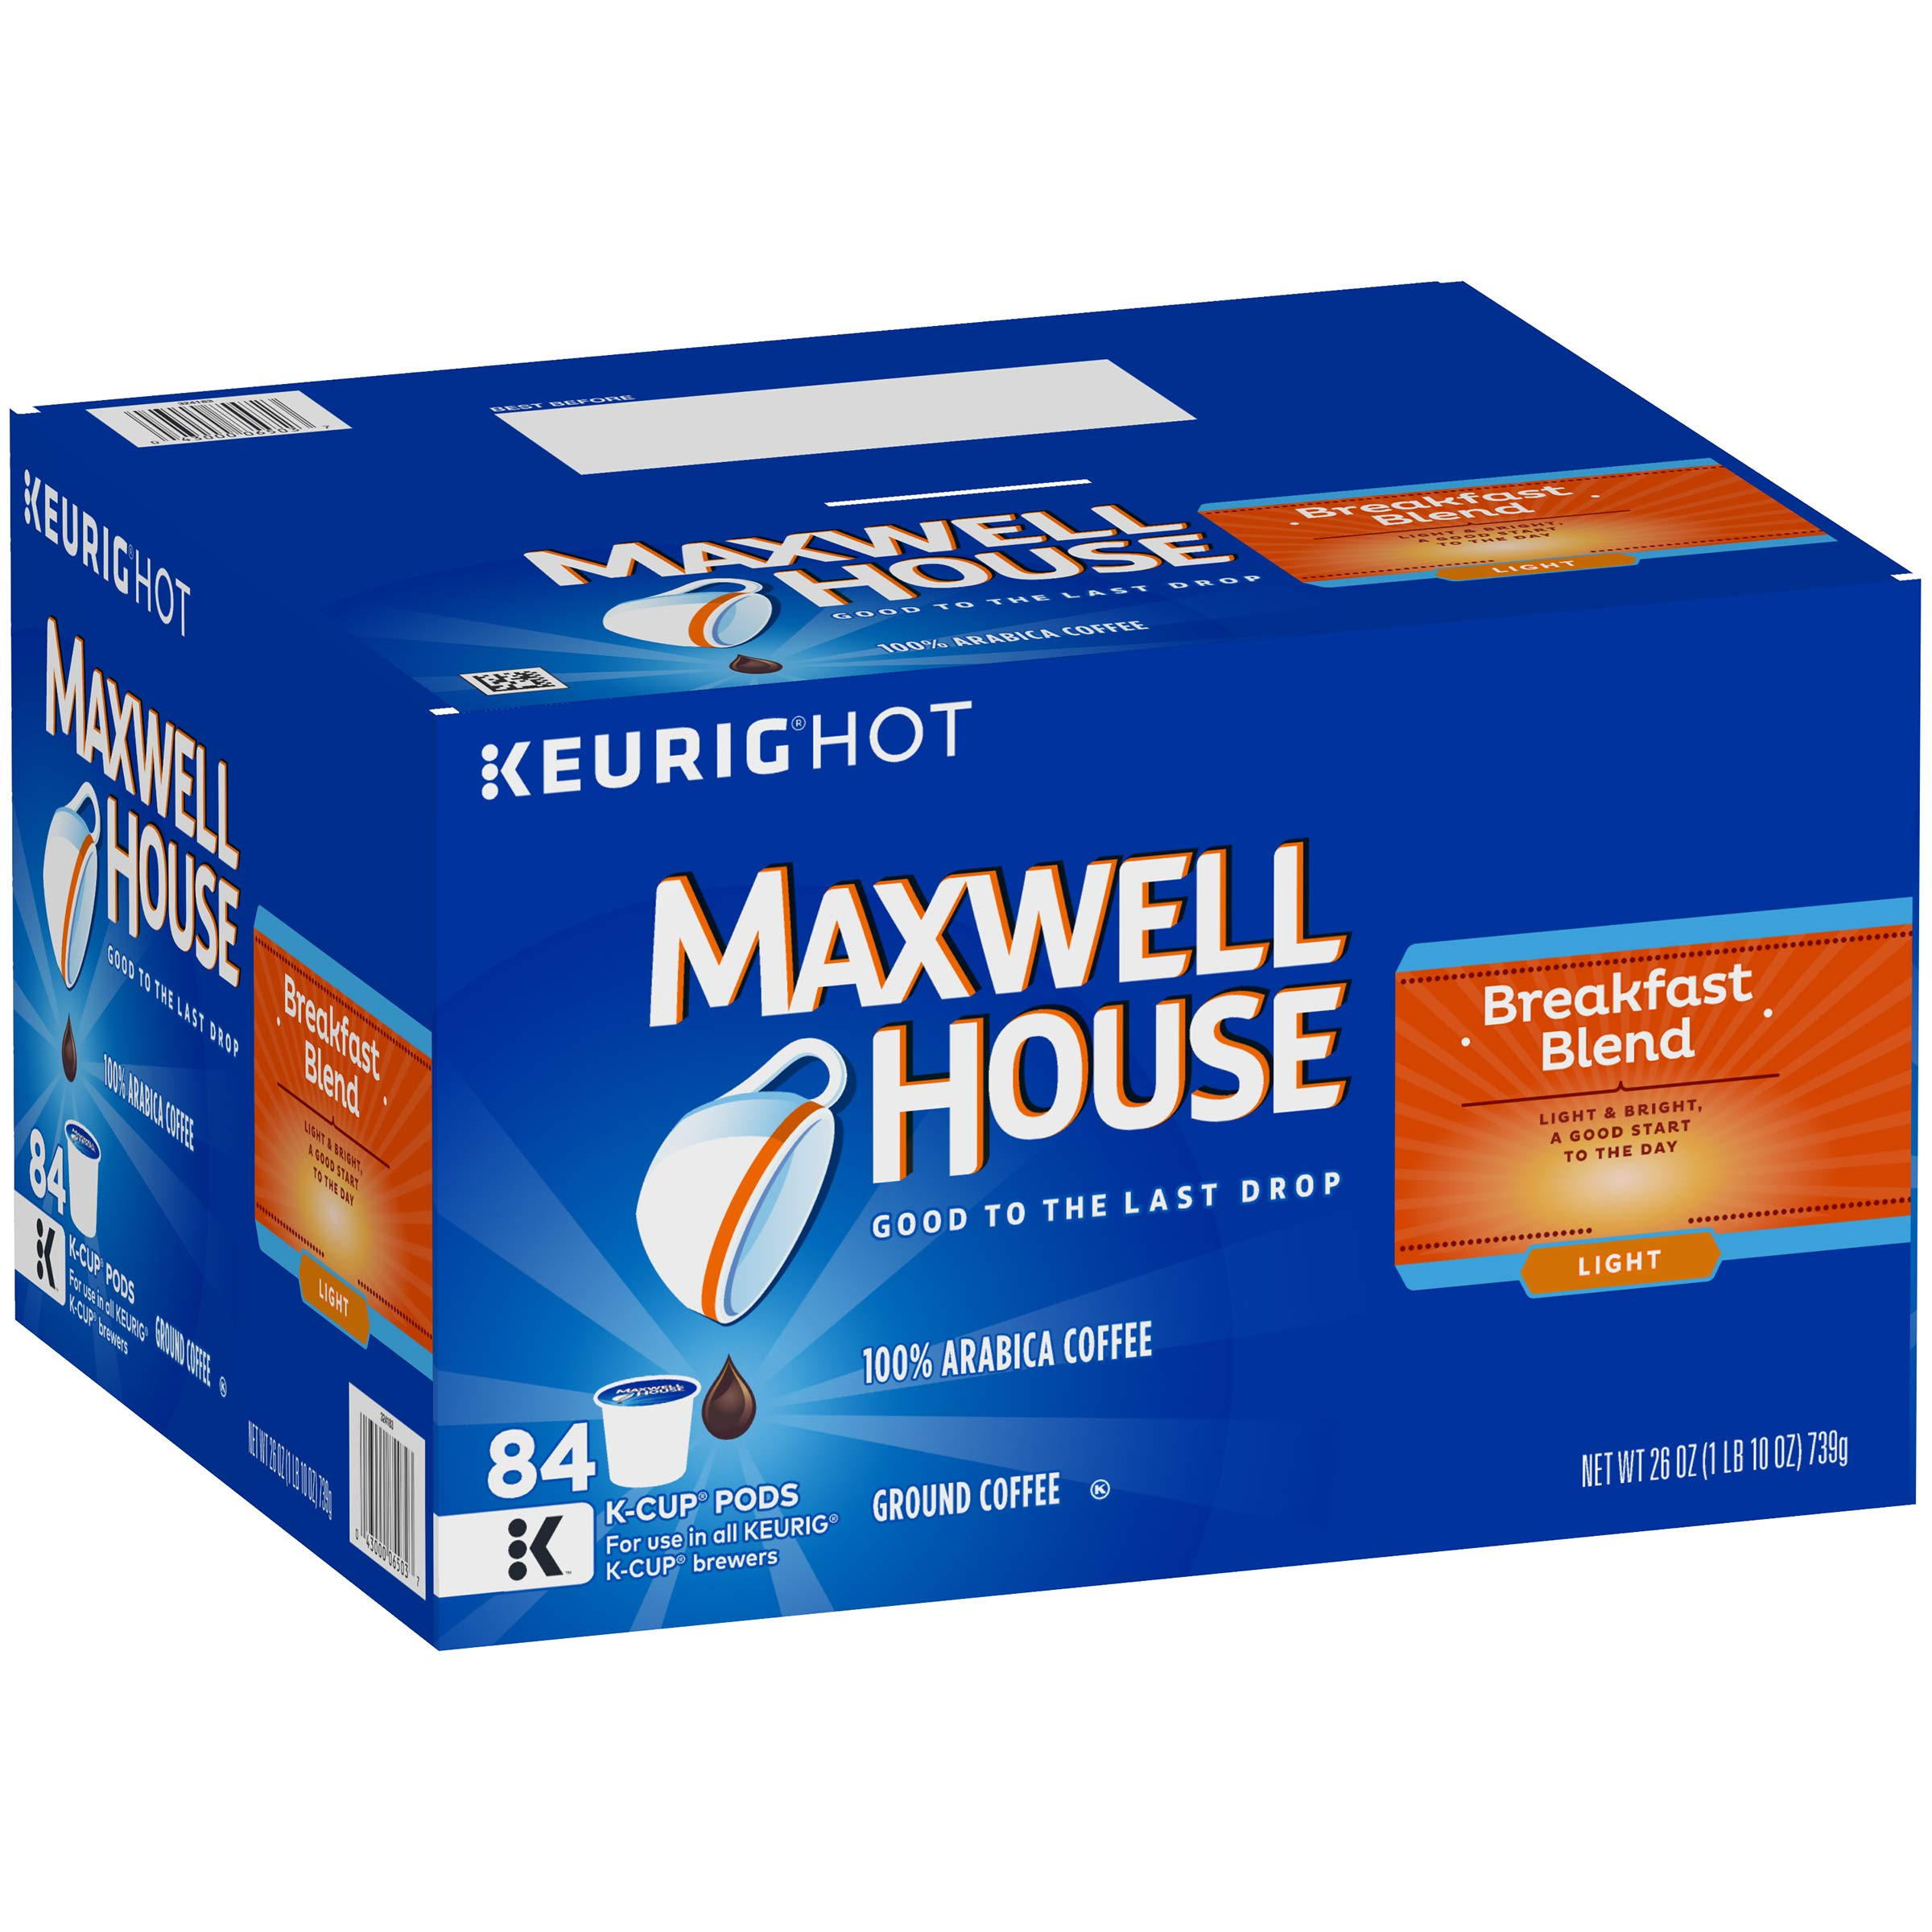 Maxwell House Breakfast Blend Keurig K Cup Coffee Pods, 84 Count by MAXWELL HOUSE